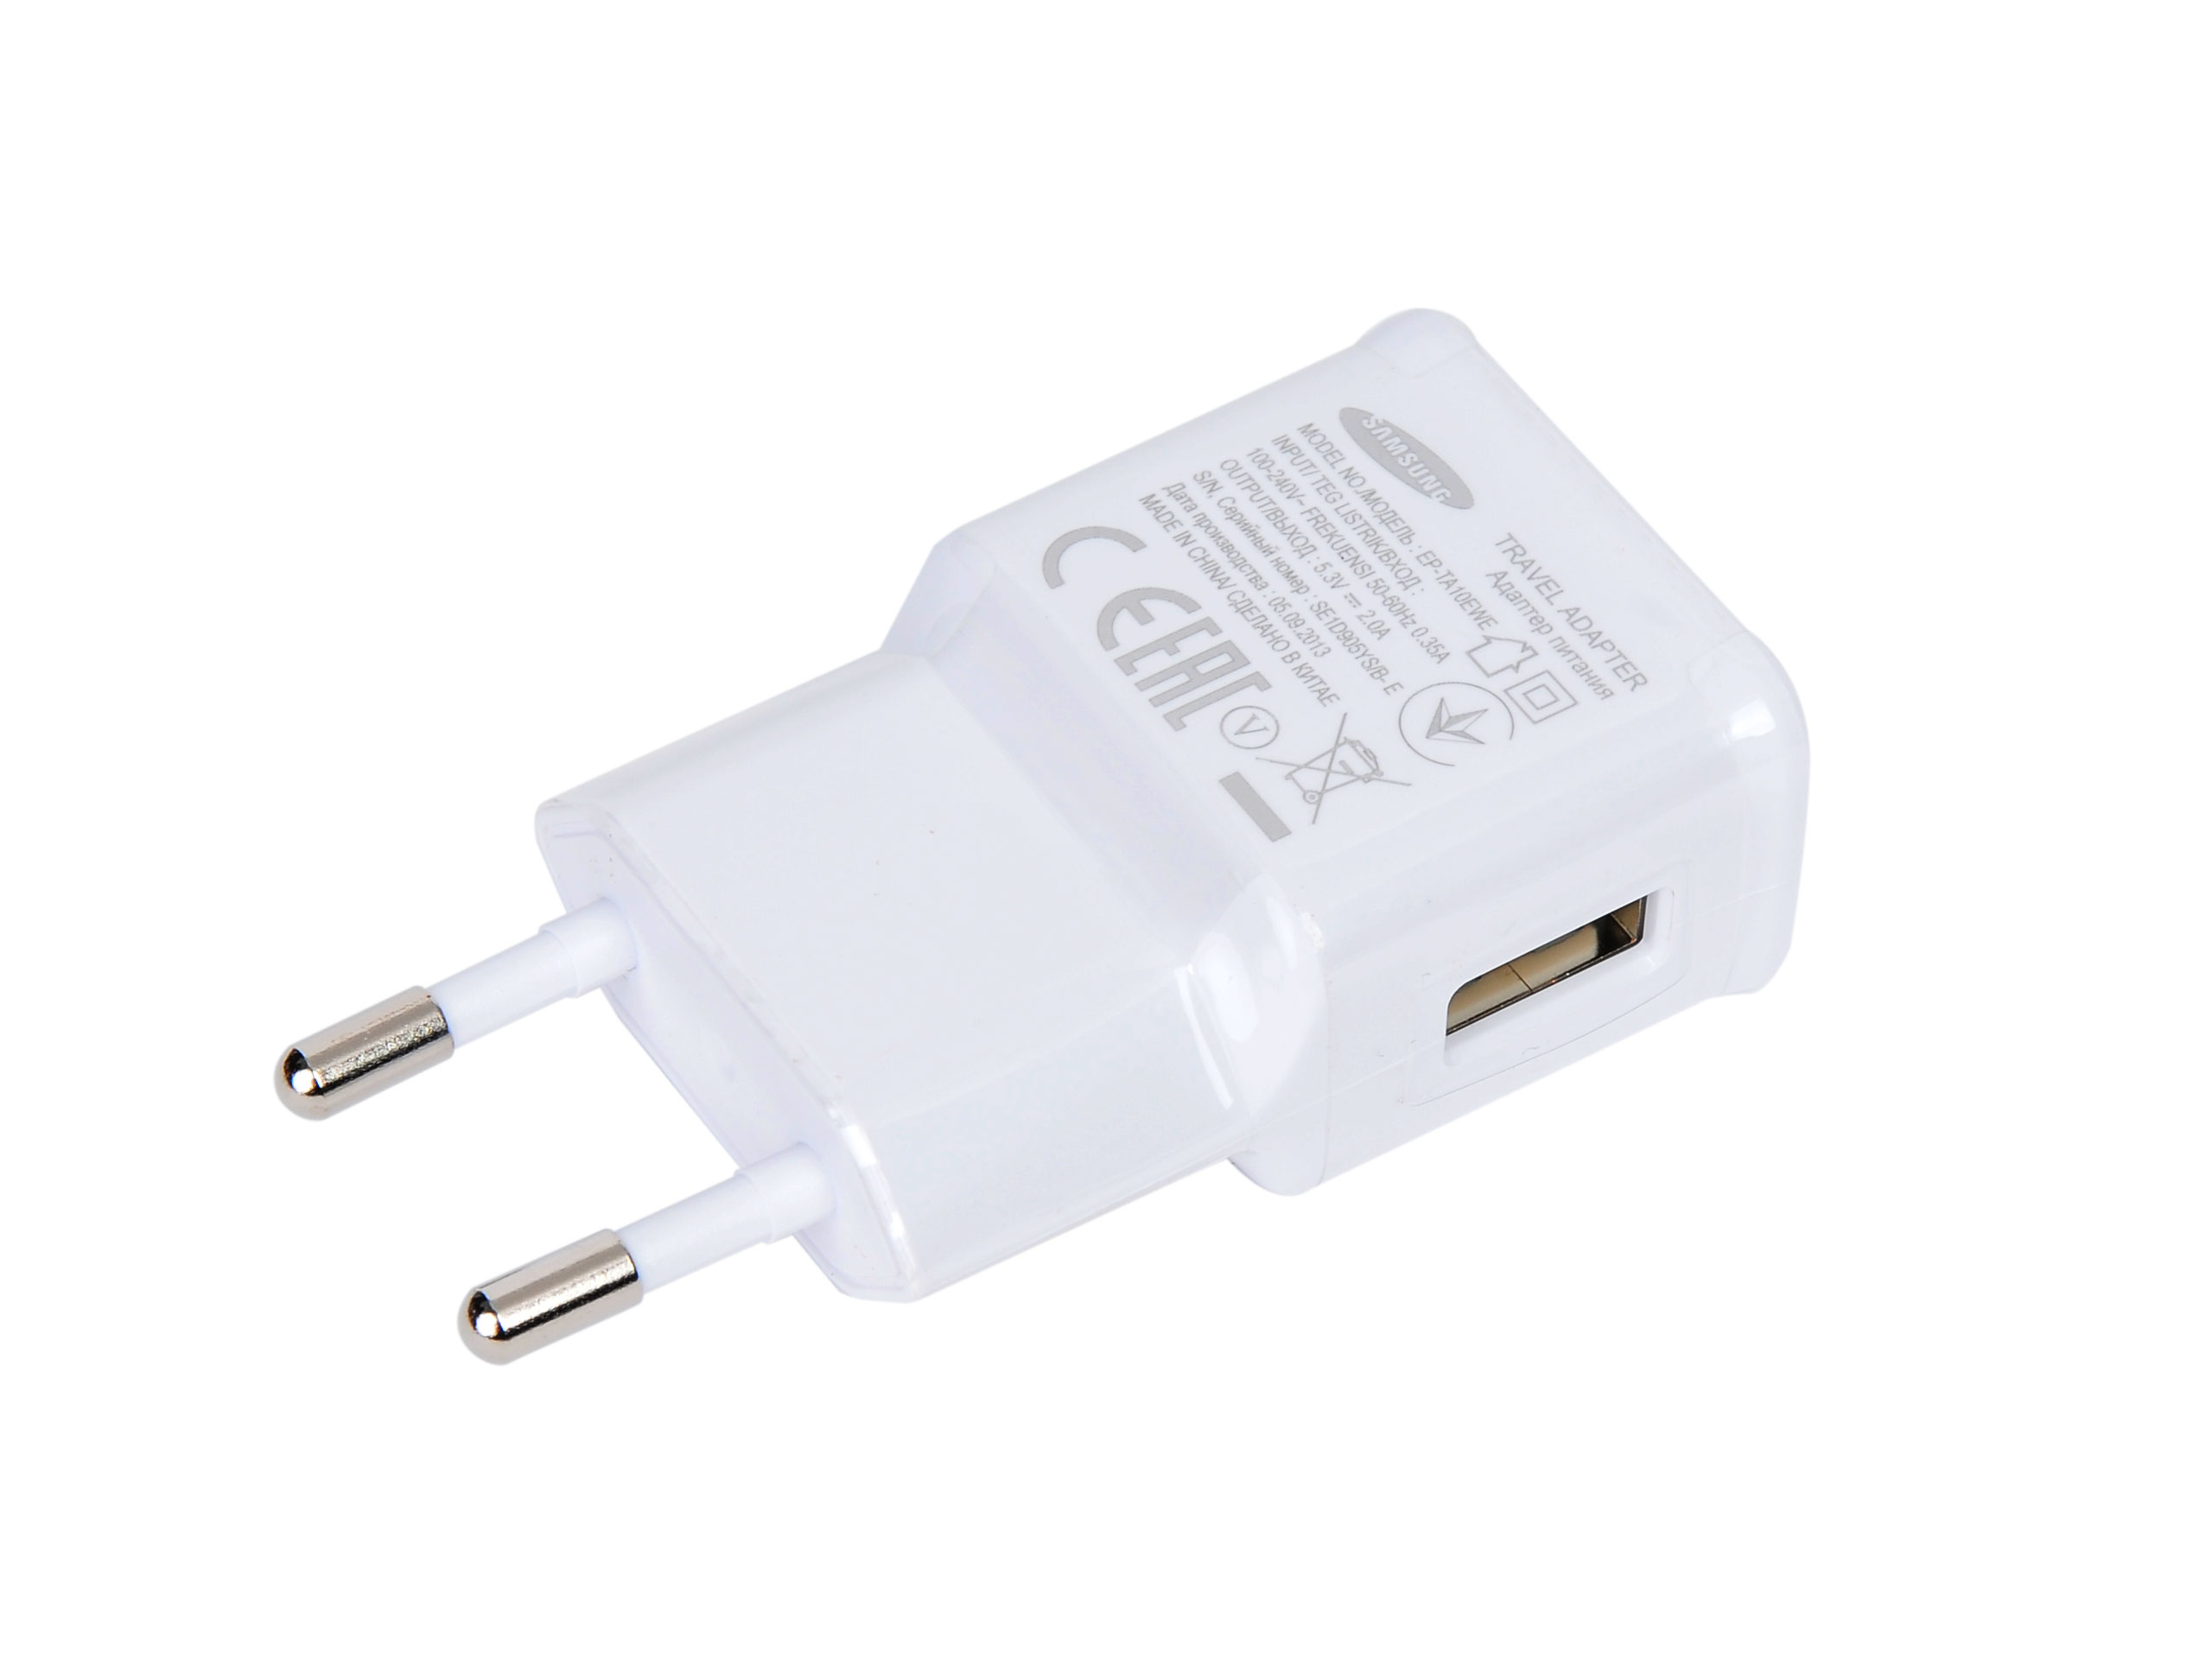 Samsung ETA-U90EWE Superior Speed Charging Travel Adapter (5V @ 2A)